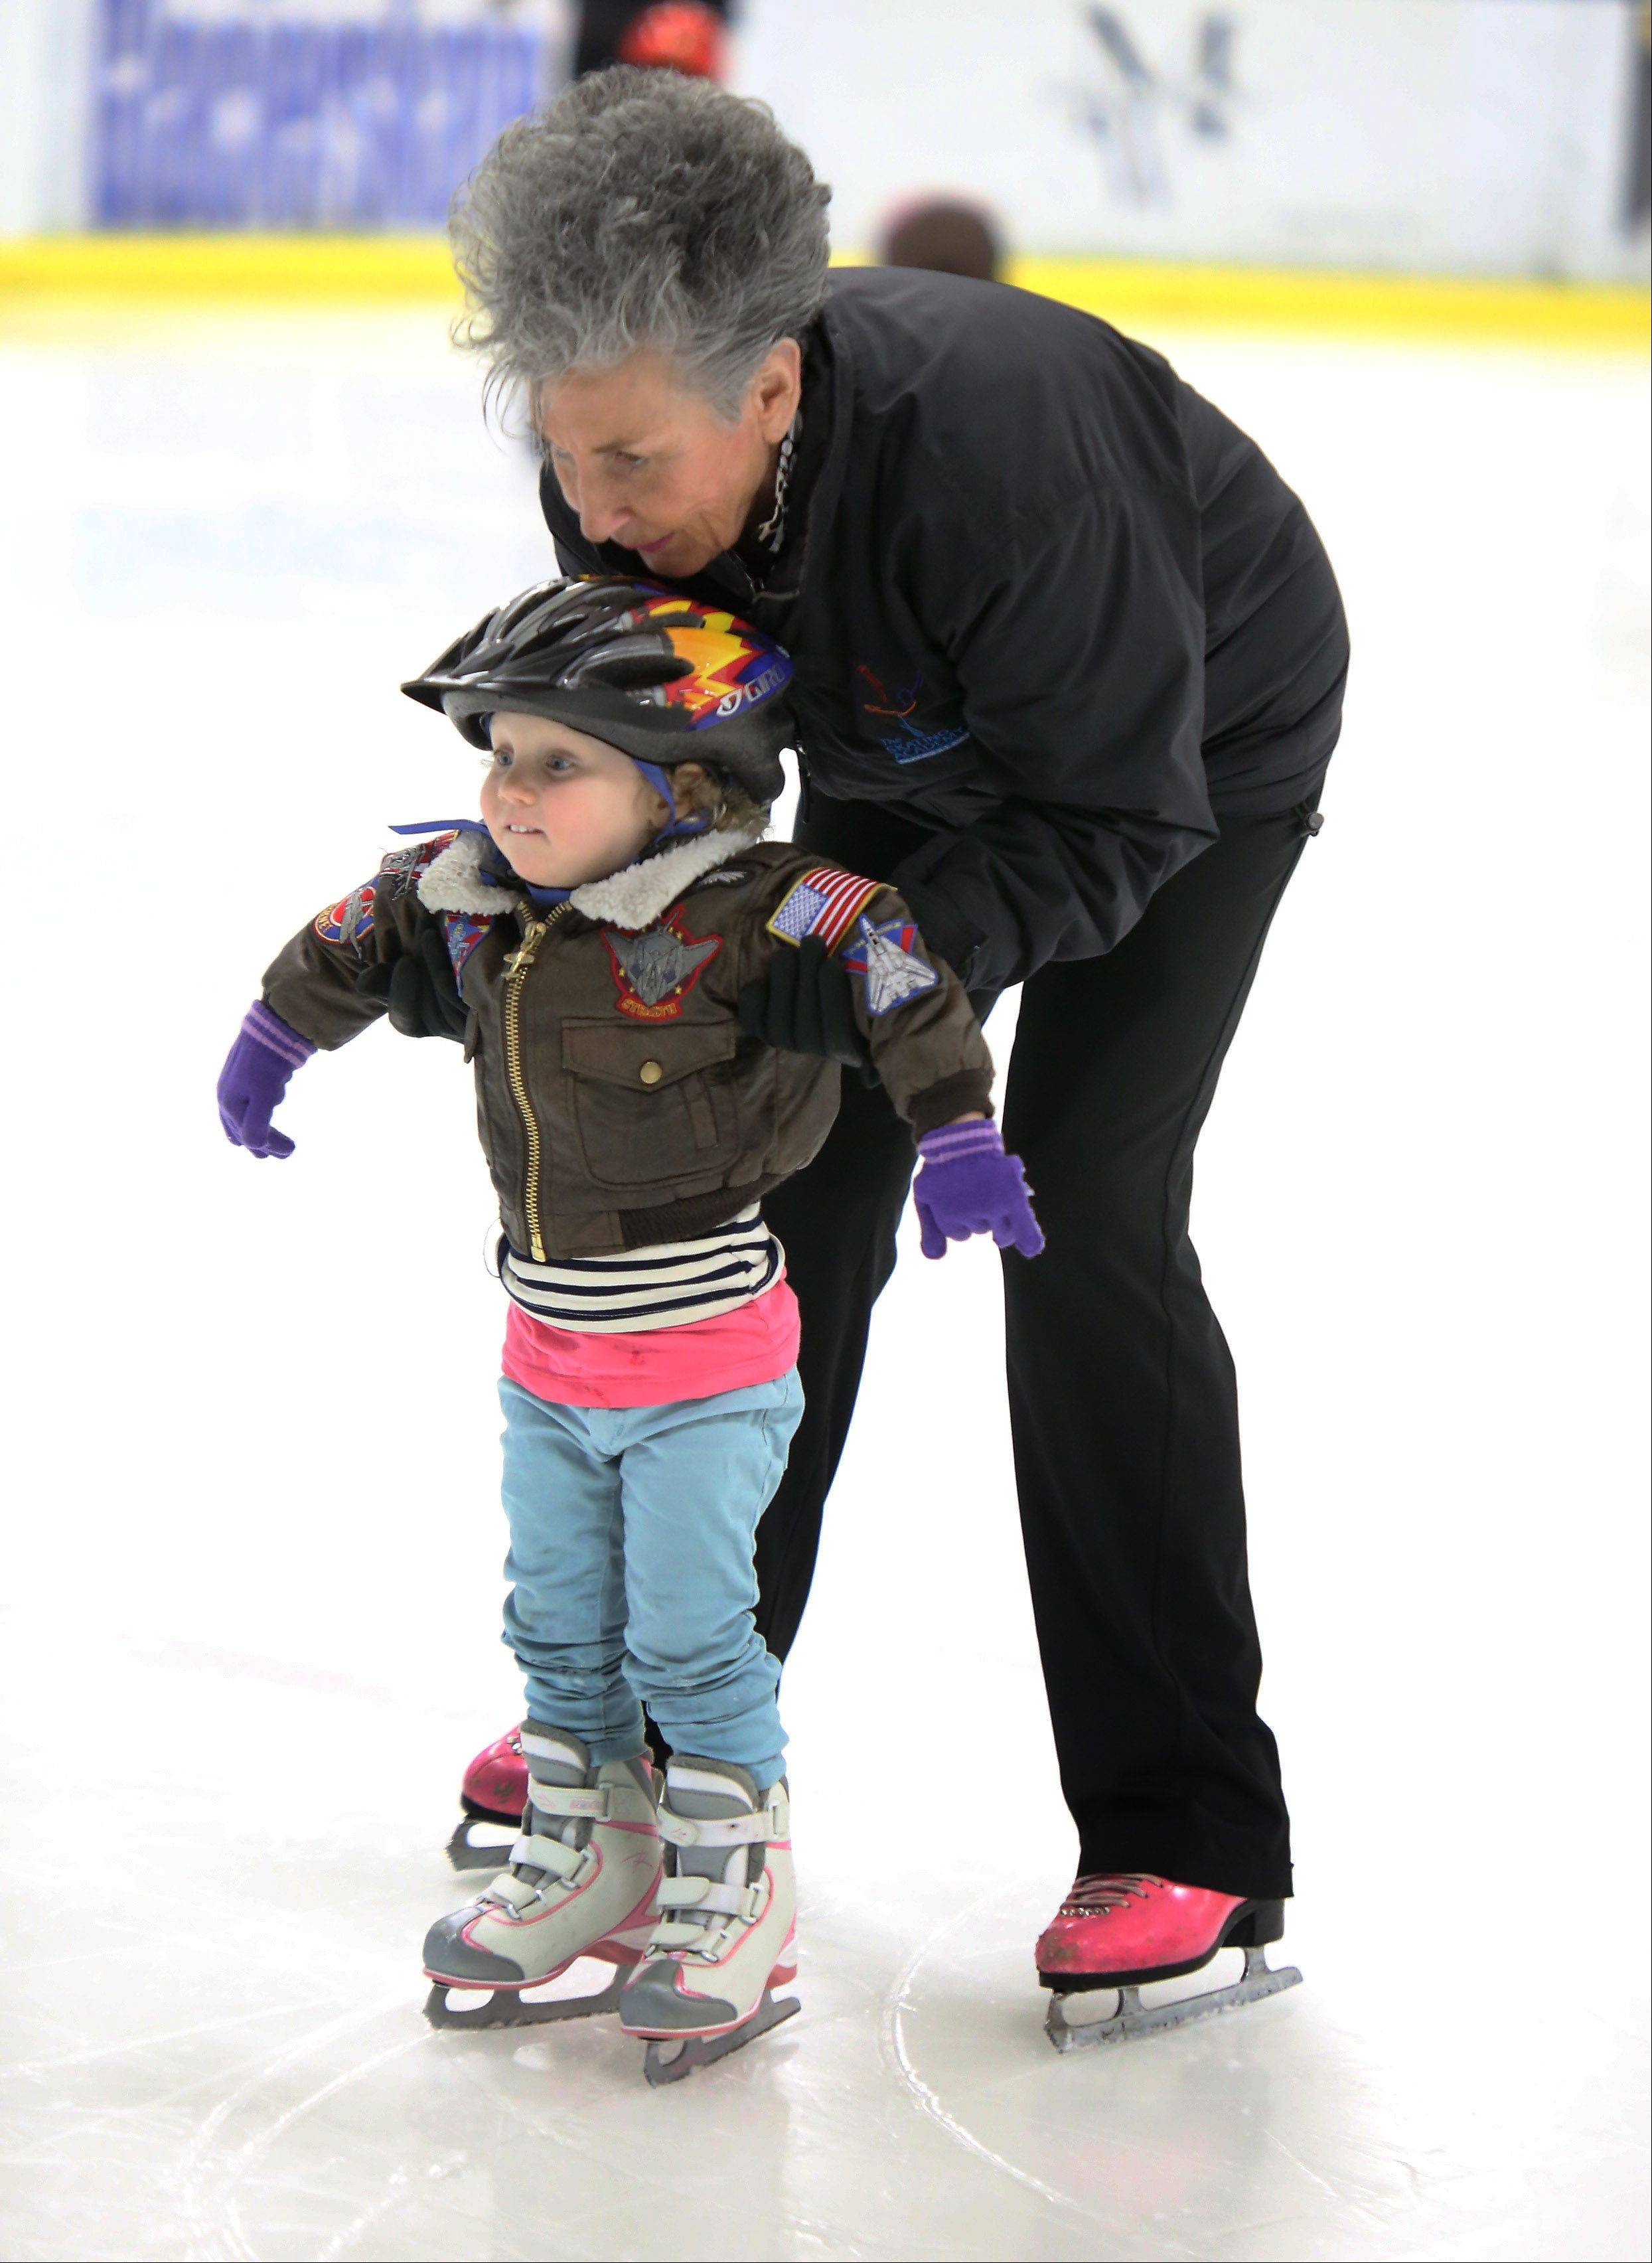 Ice skating teacher Karen Kay Lavris helps Lucy Wiener, 2, of Lincolnshire, learn to skate in a toddlers class at Glacier Ice Arena in Vernon Hills.